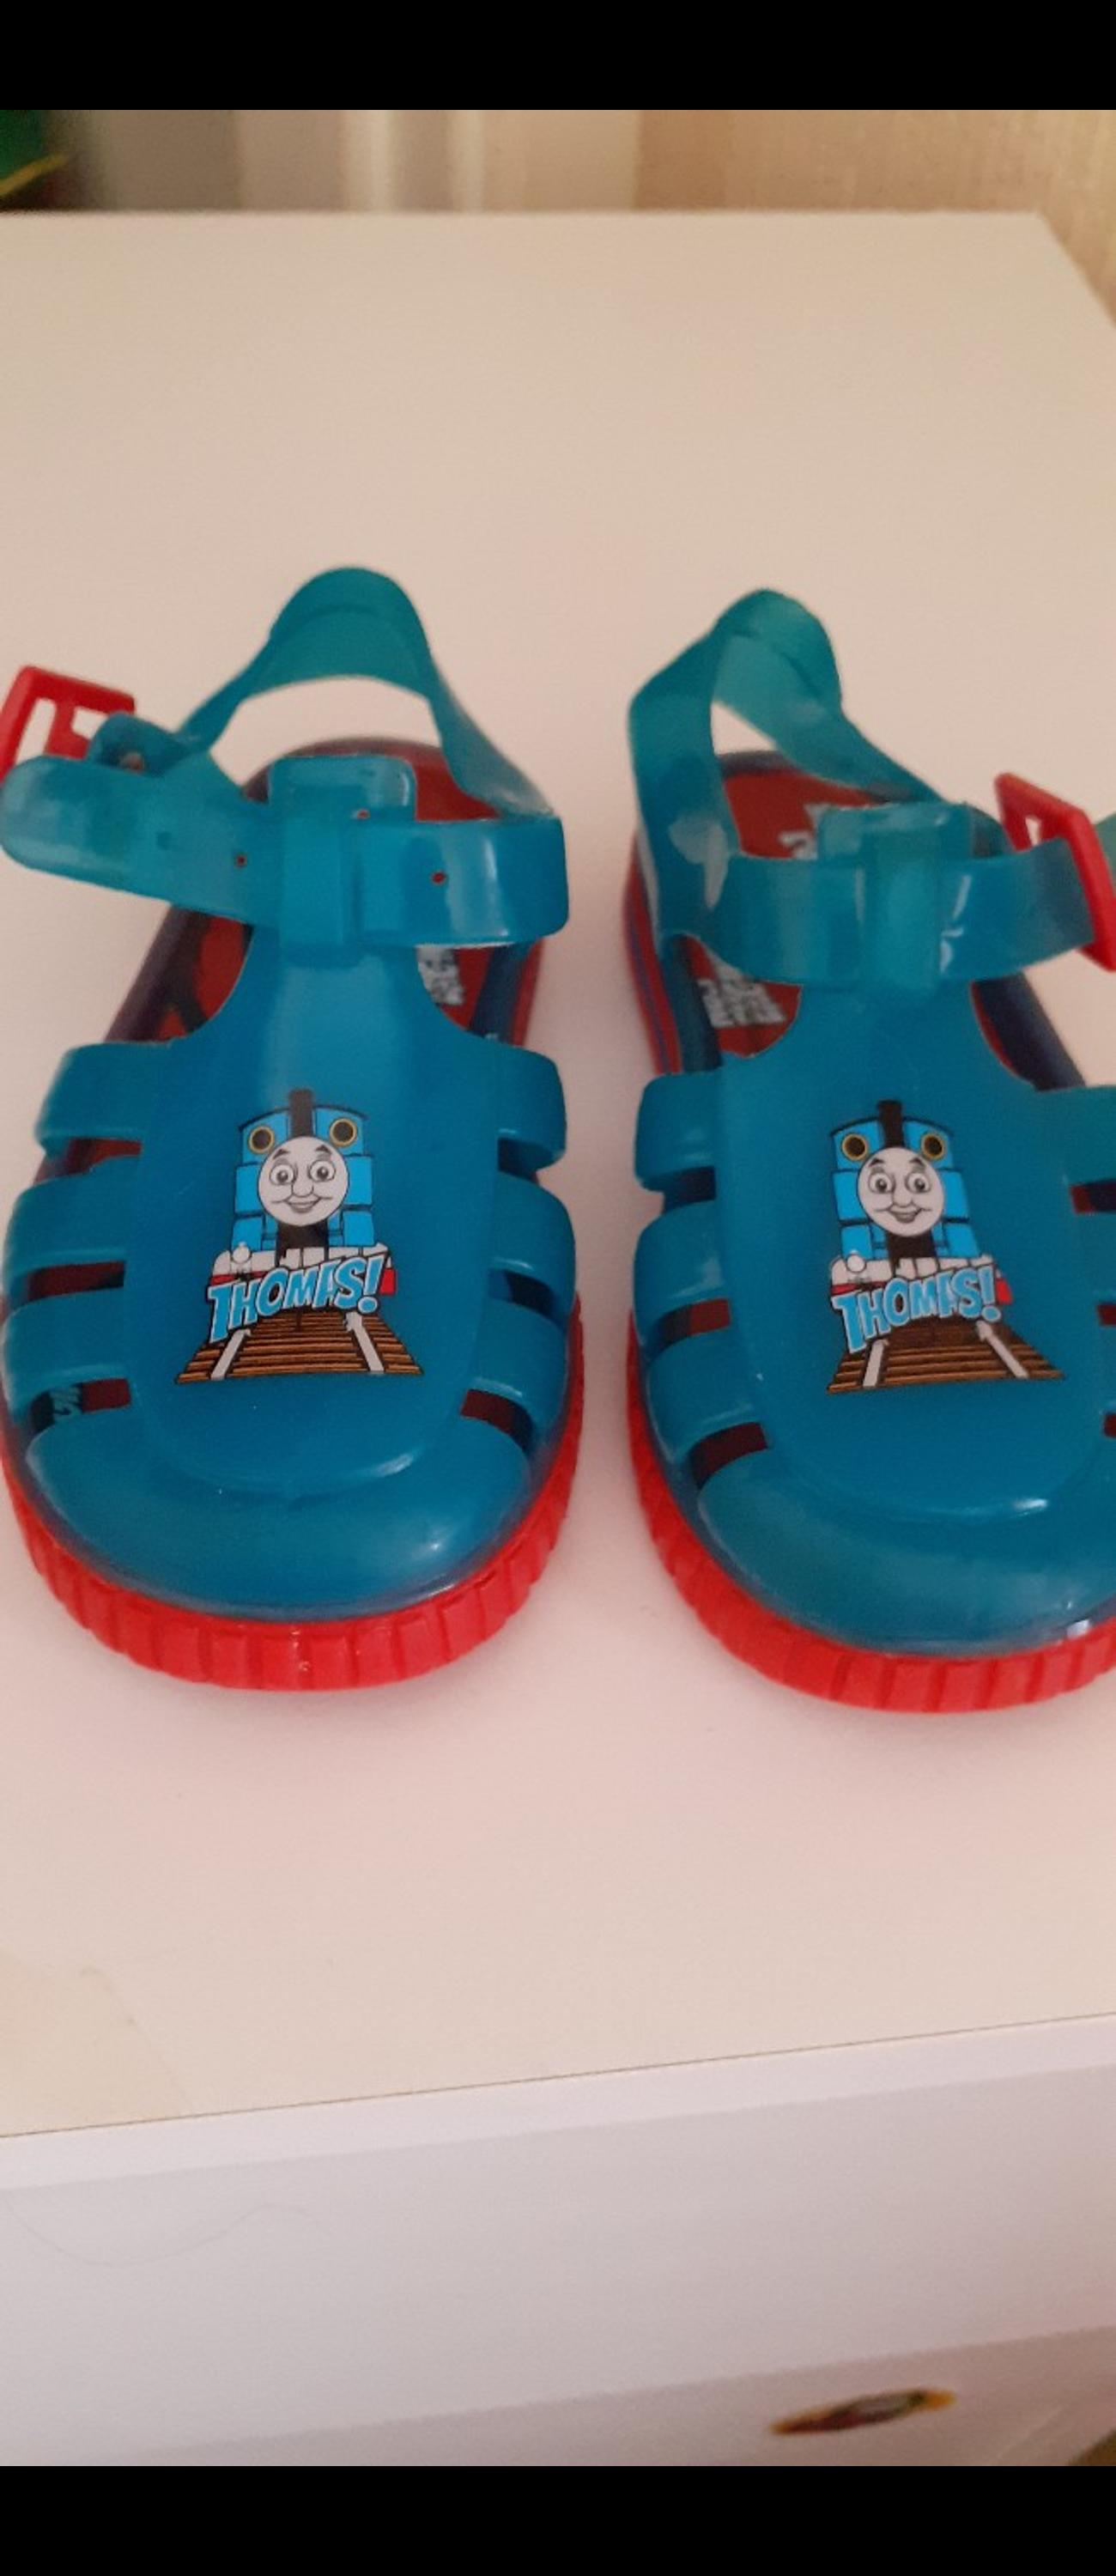 size 6 thomas the tank jelly shoe. perfect for any child who loves Thomas. collection bootle or postage at buyers expense.